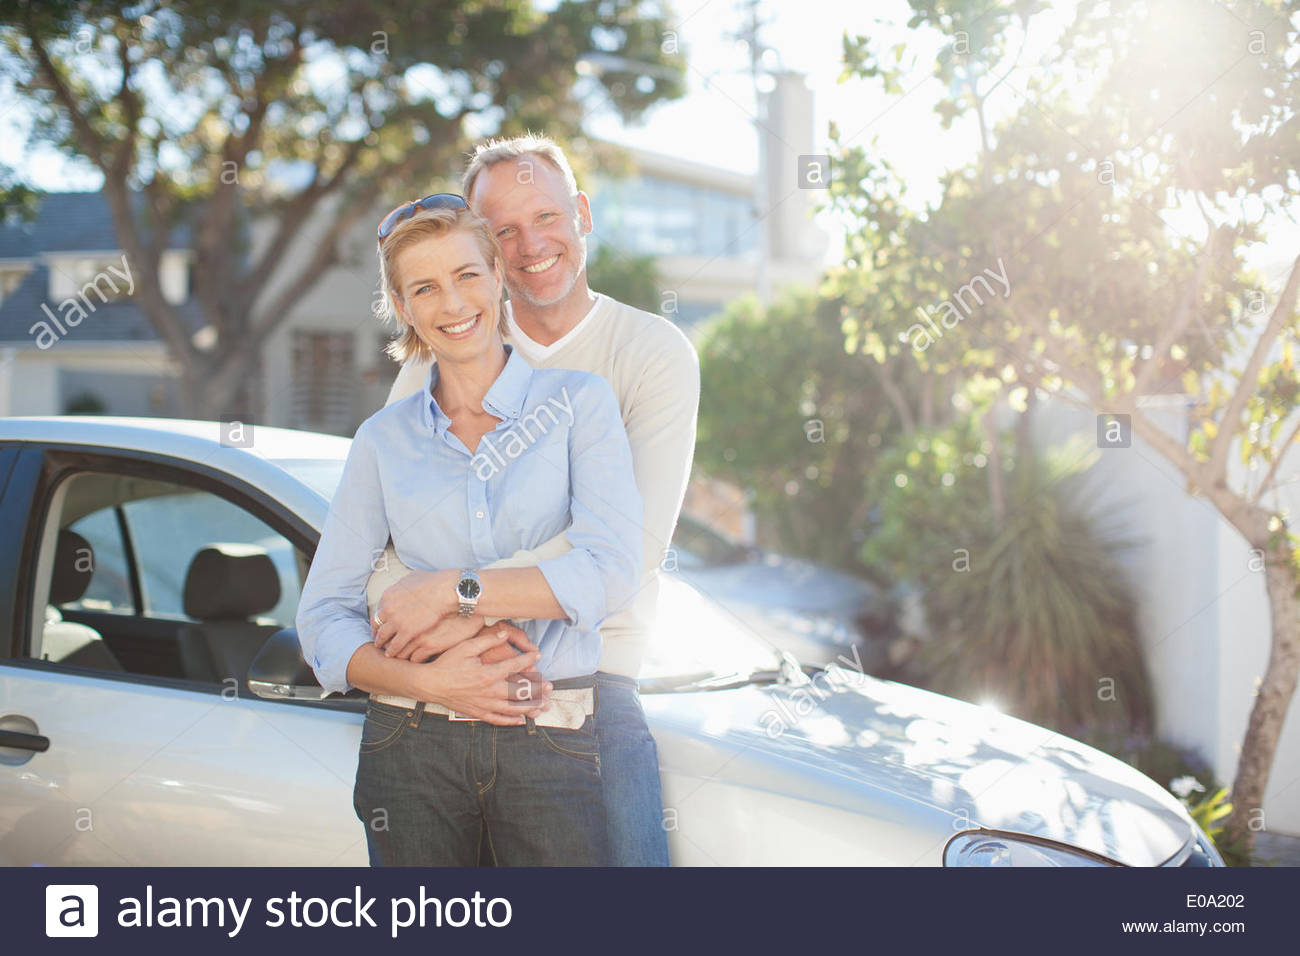 Mature couple hugging outdoors - Stock Image